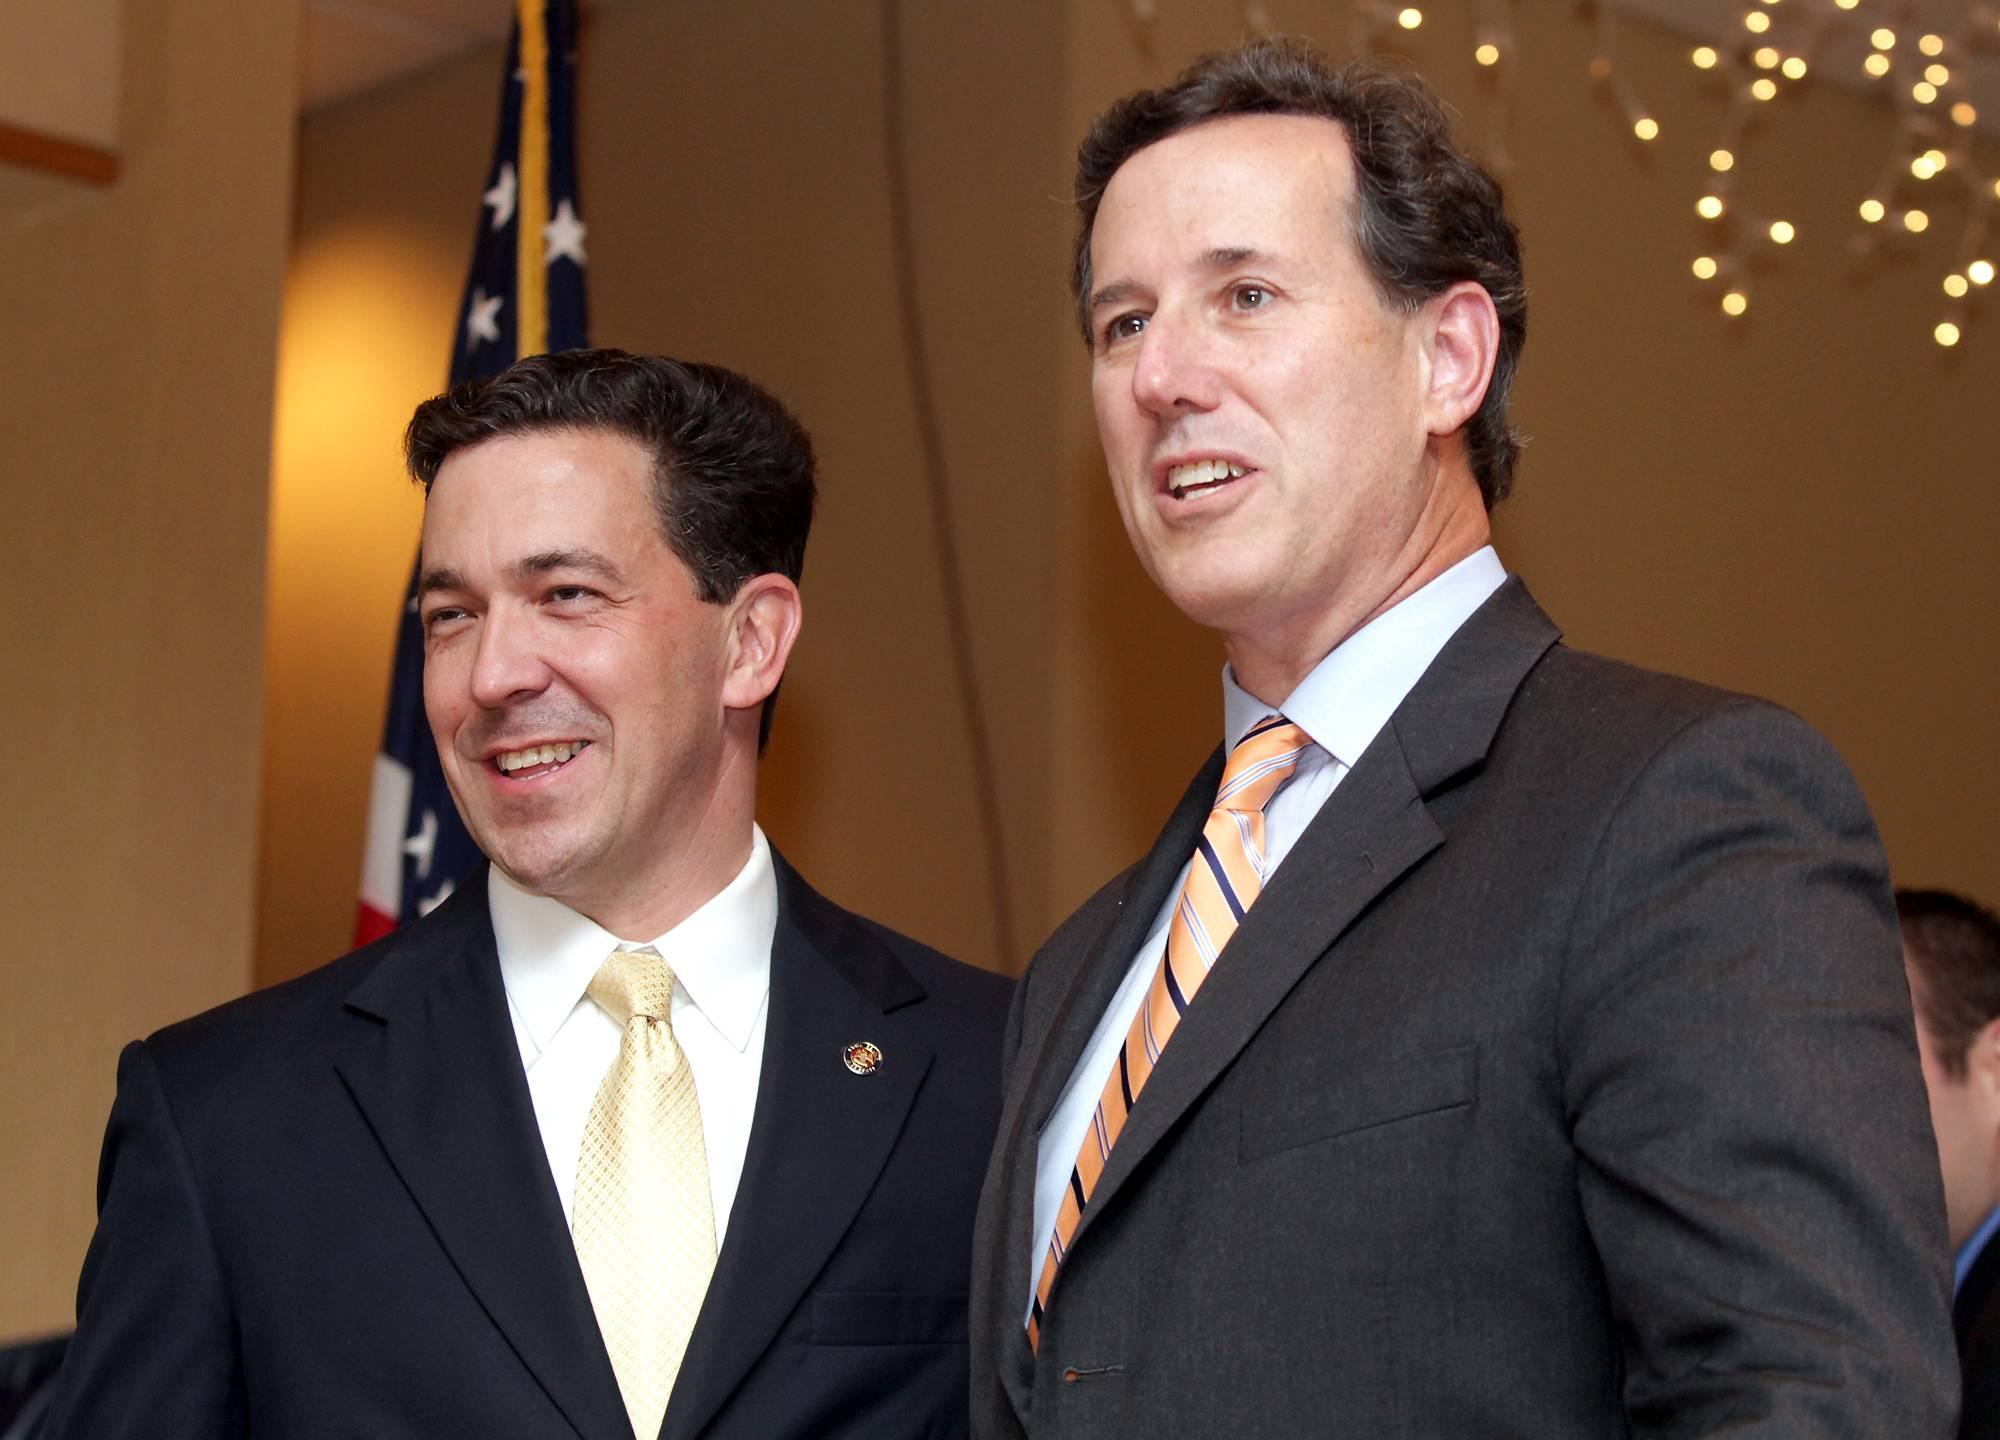 Former U.S. Sen. Rick Santorum, right, a Pennsylvania Republican, stands beside U.S. Sen. candidate Chris McDaniel during a rally on Saturday in Diamondhead, Miss.